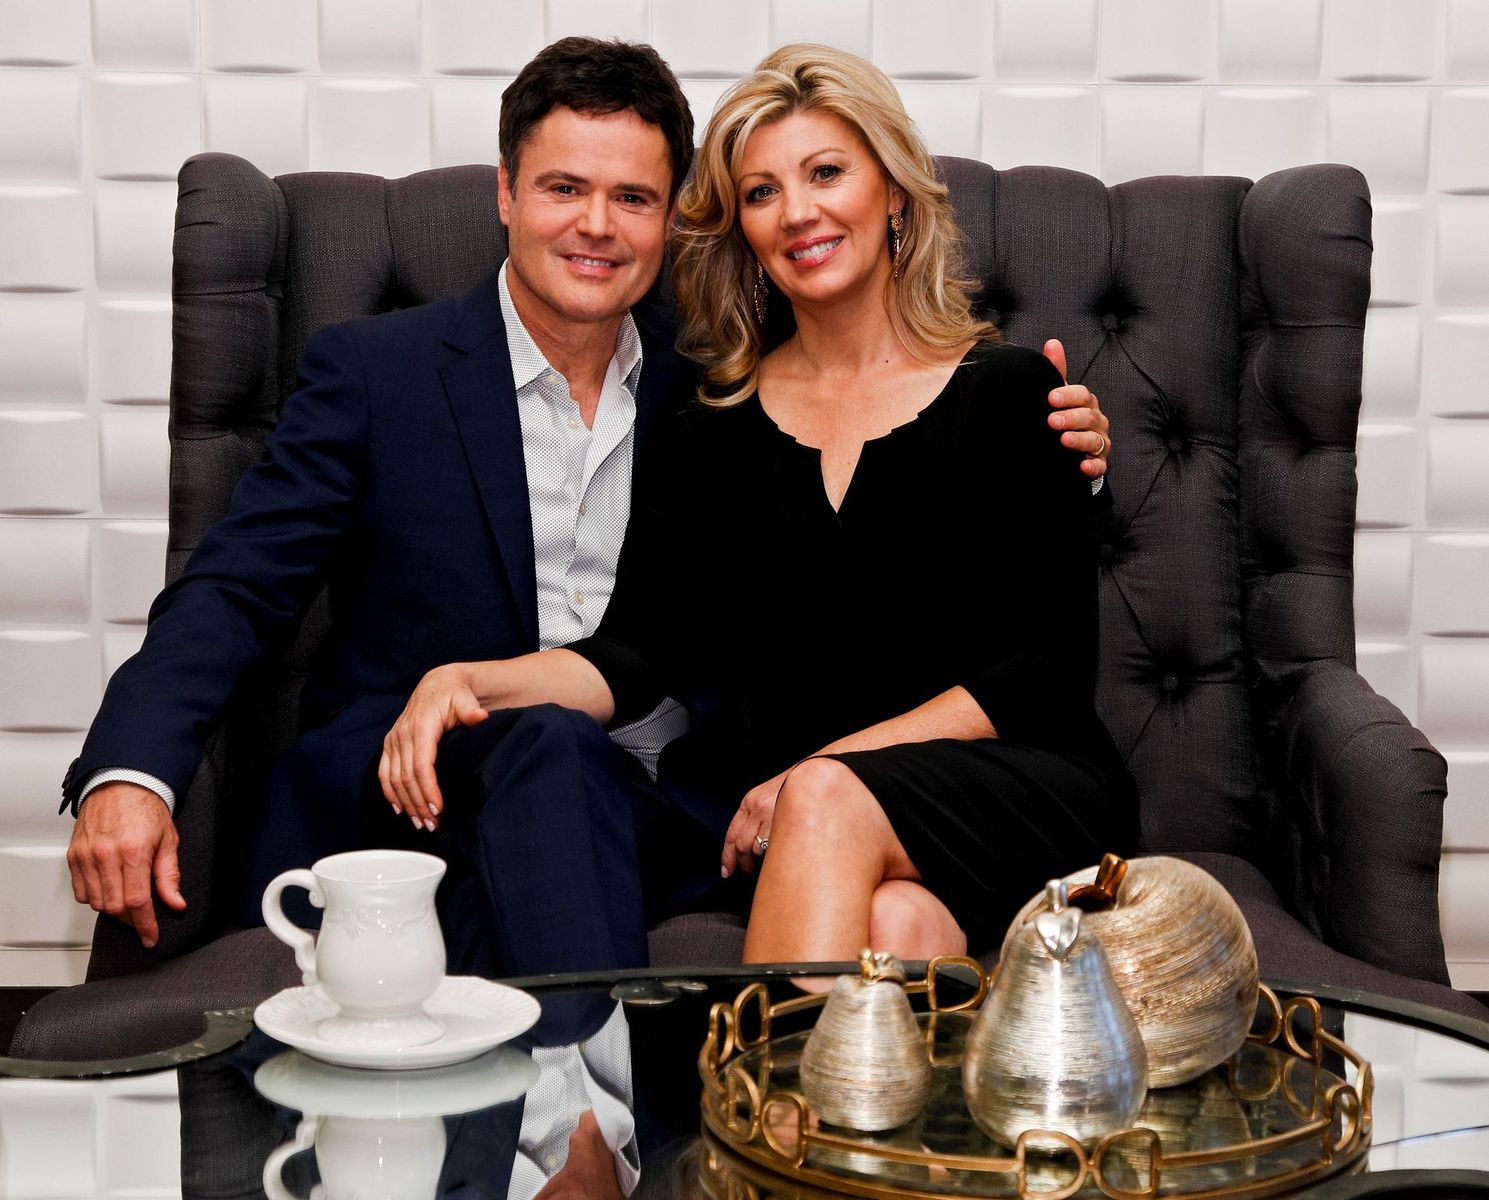 Donny and Debbie Osmond at the launch of Donny Osmond Home,2013 /Photo:Getty Images